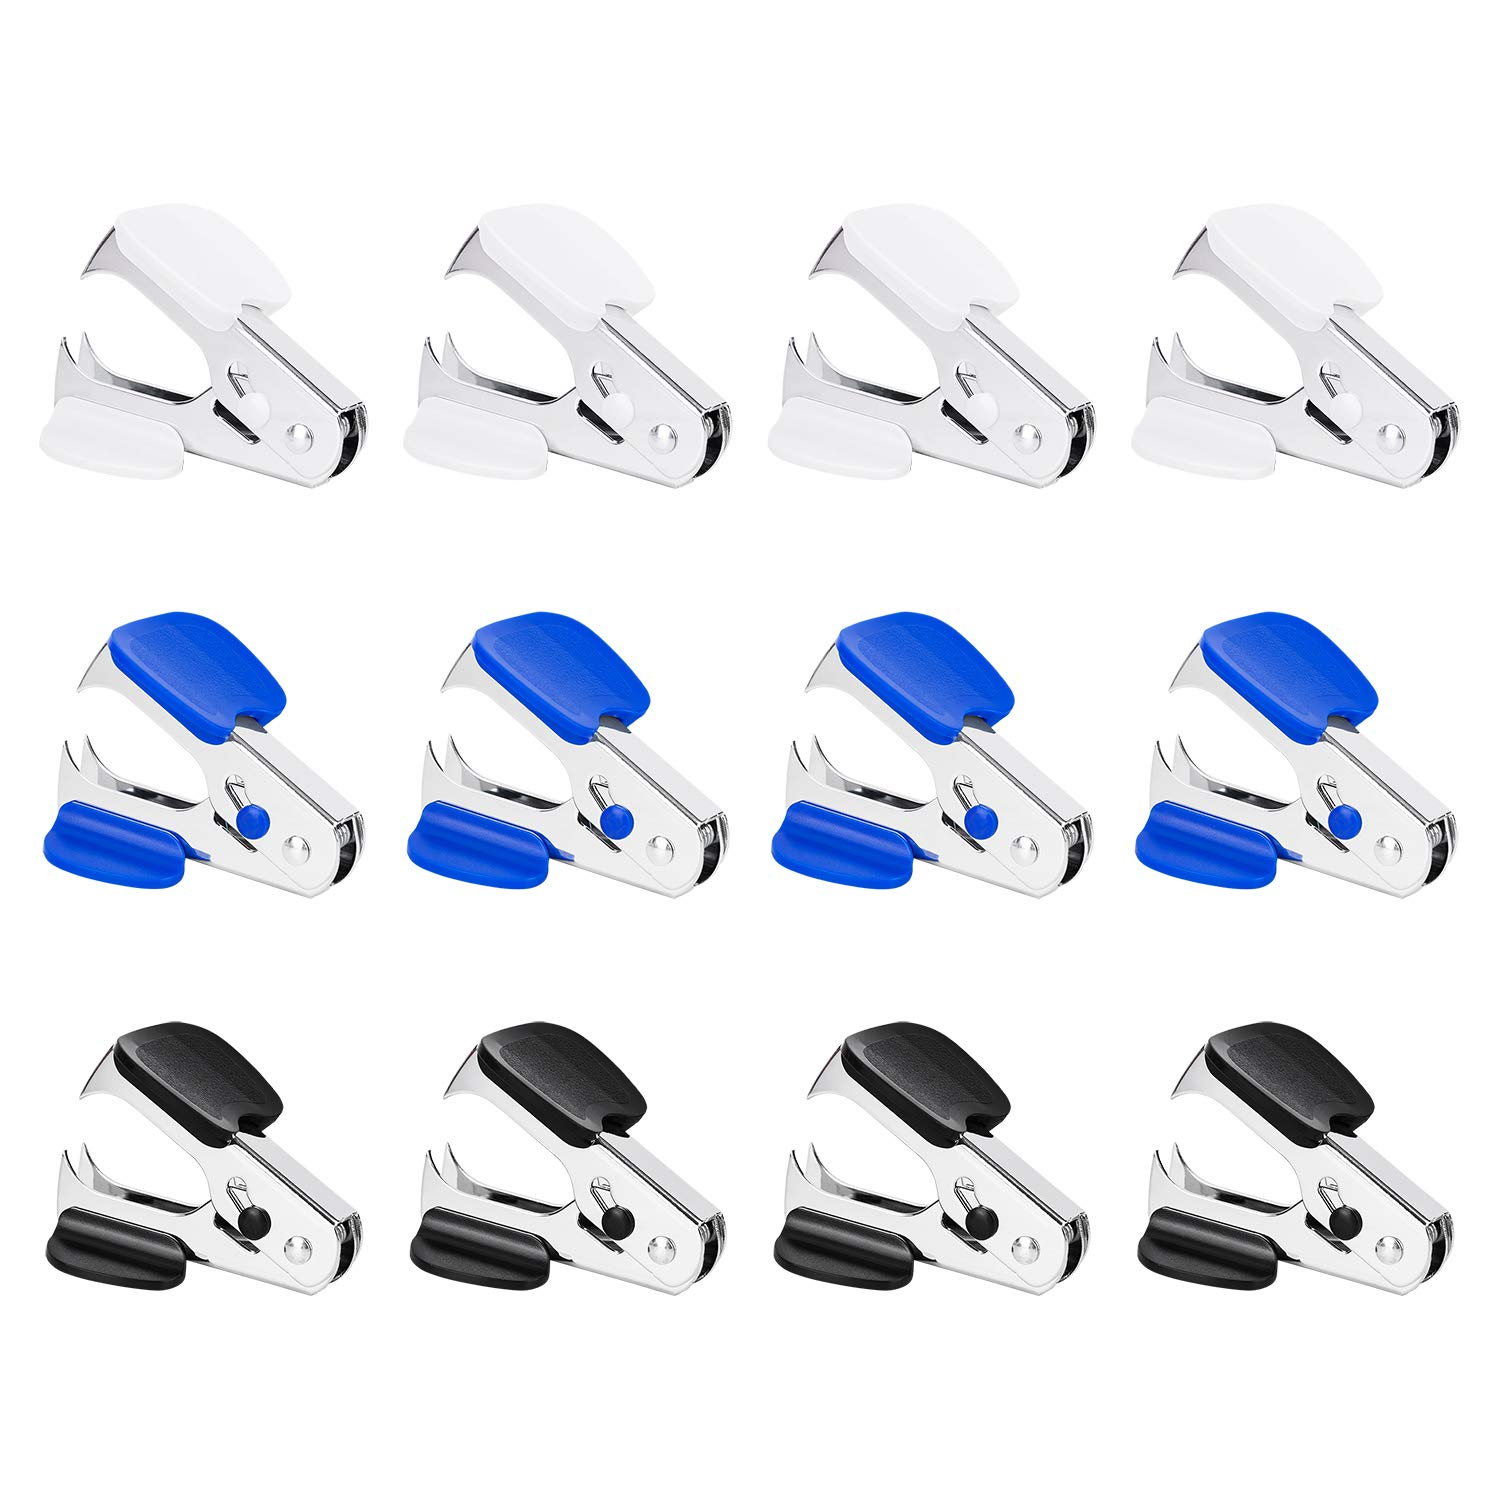 Deli 12 Pack Staple Remover Staple Puller Removal Tool for School Office Home, Multicolored Jaw Style Staples Remover, Assorted Colors